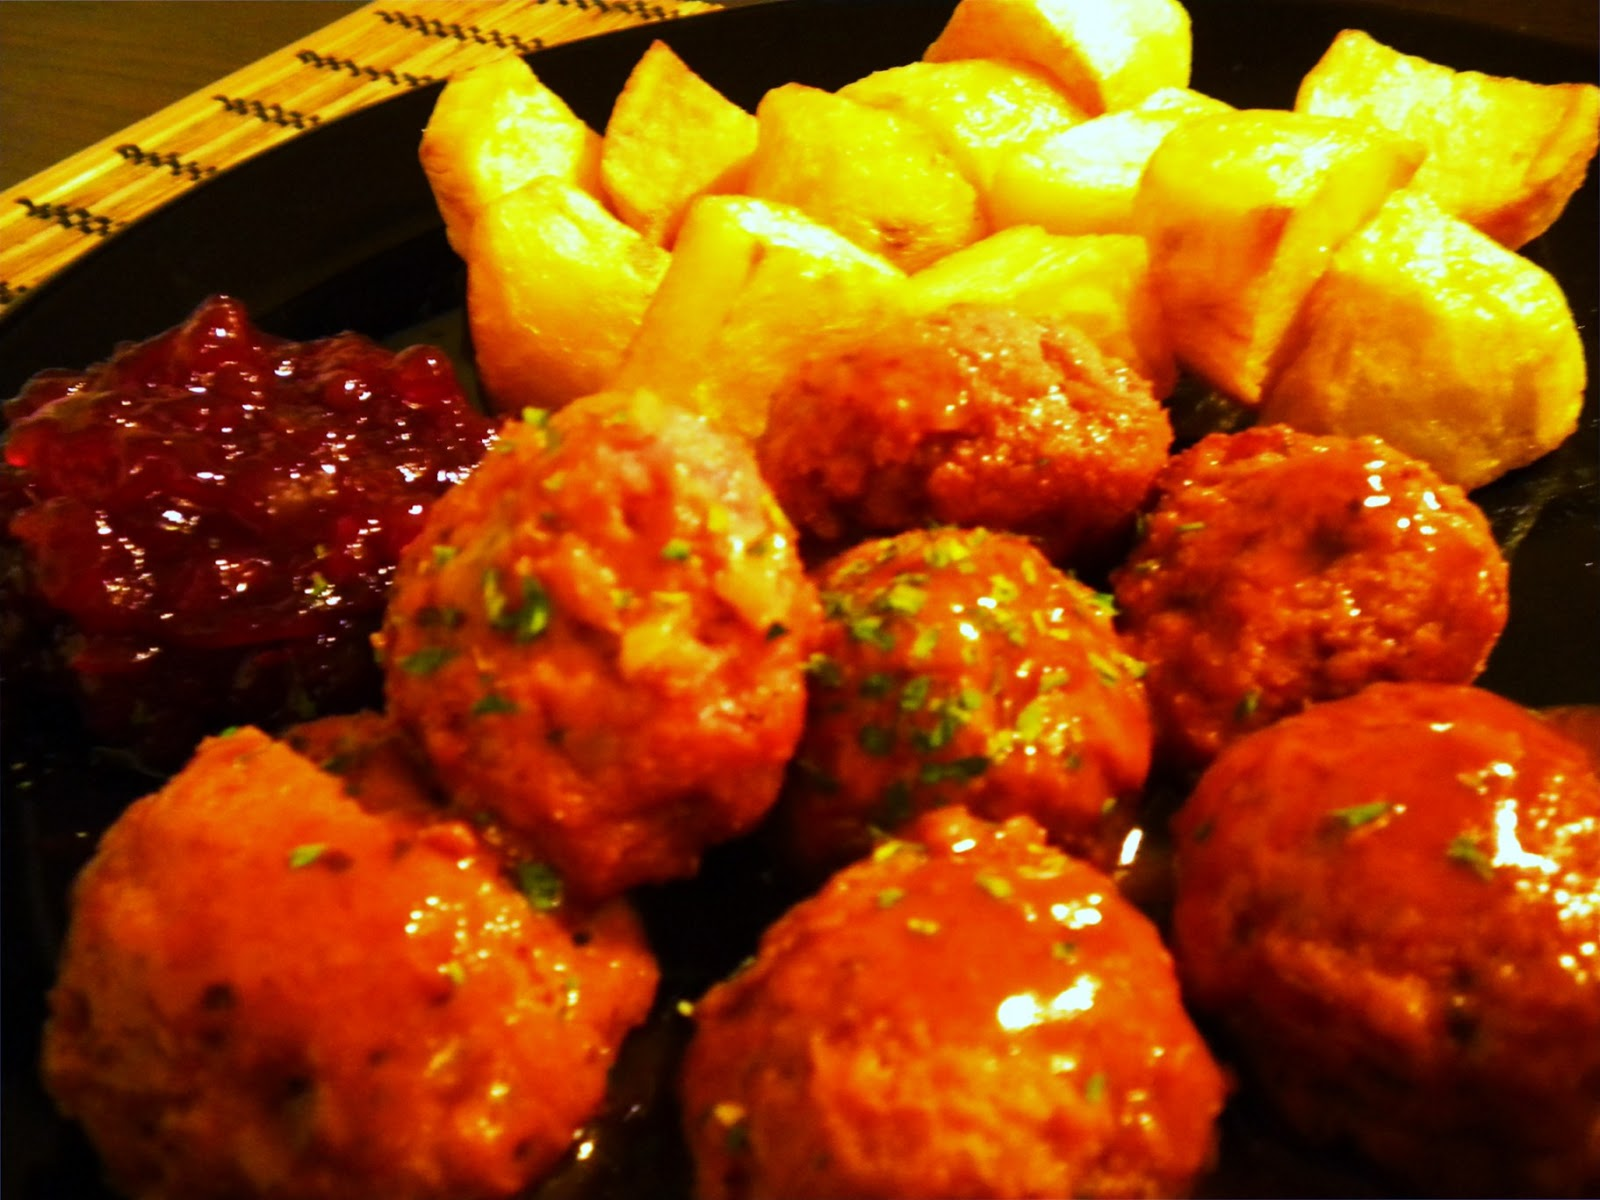 swedish meatballs my way swedish meatballs my way juicy and moist mmmm ...